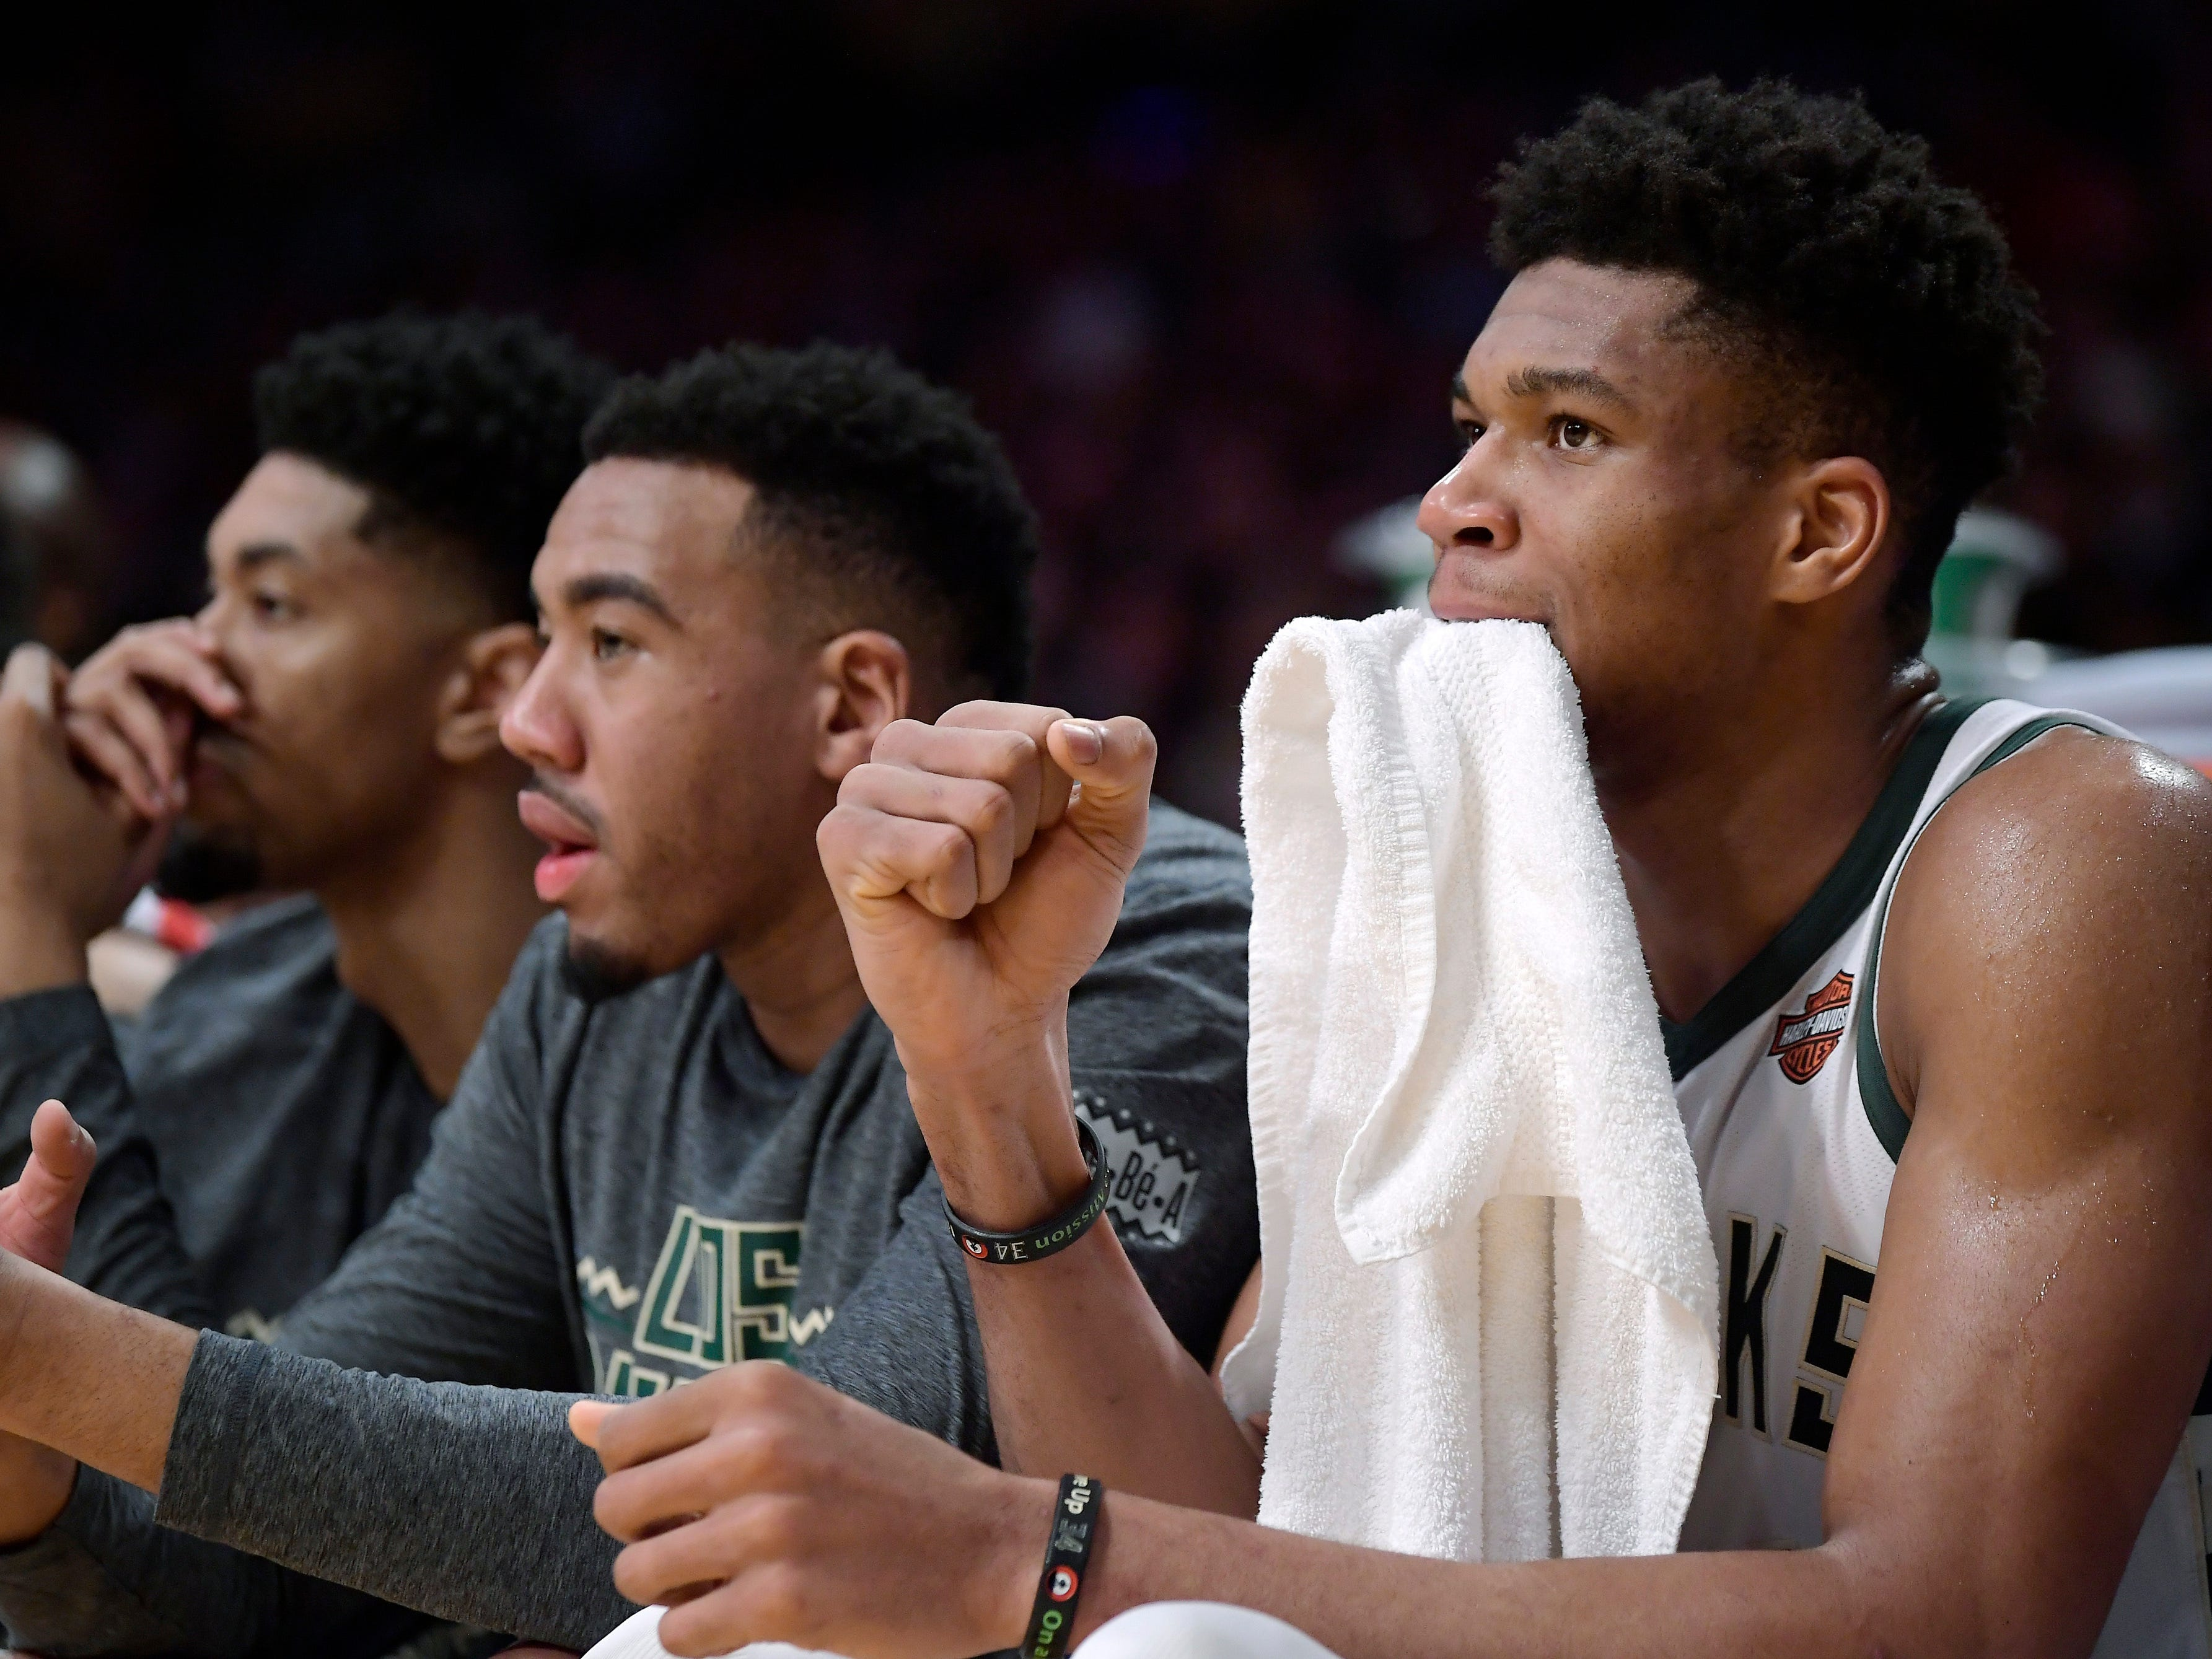 Bucks forward Giannis Antetokounmpo likes what he sees from the bench in the second half as he gets a breather against the Lakers.